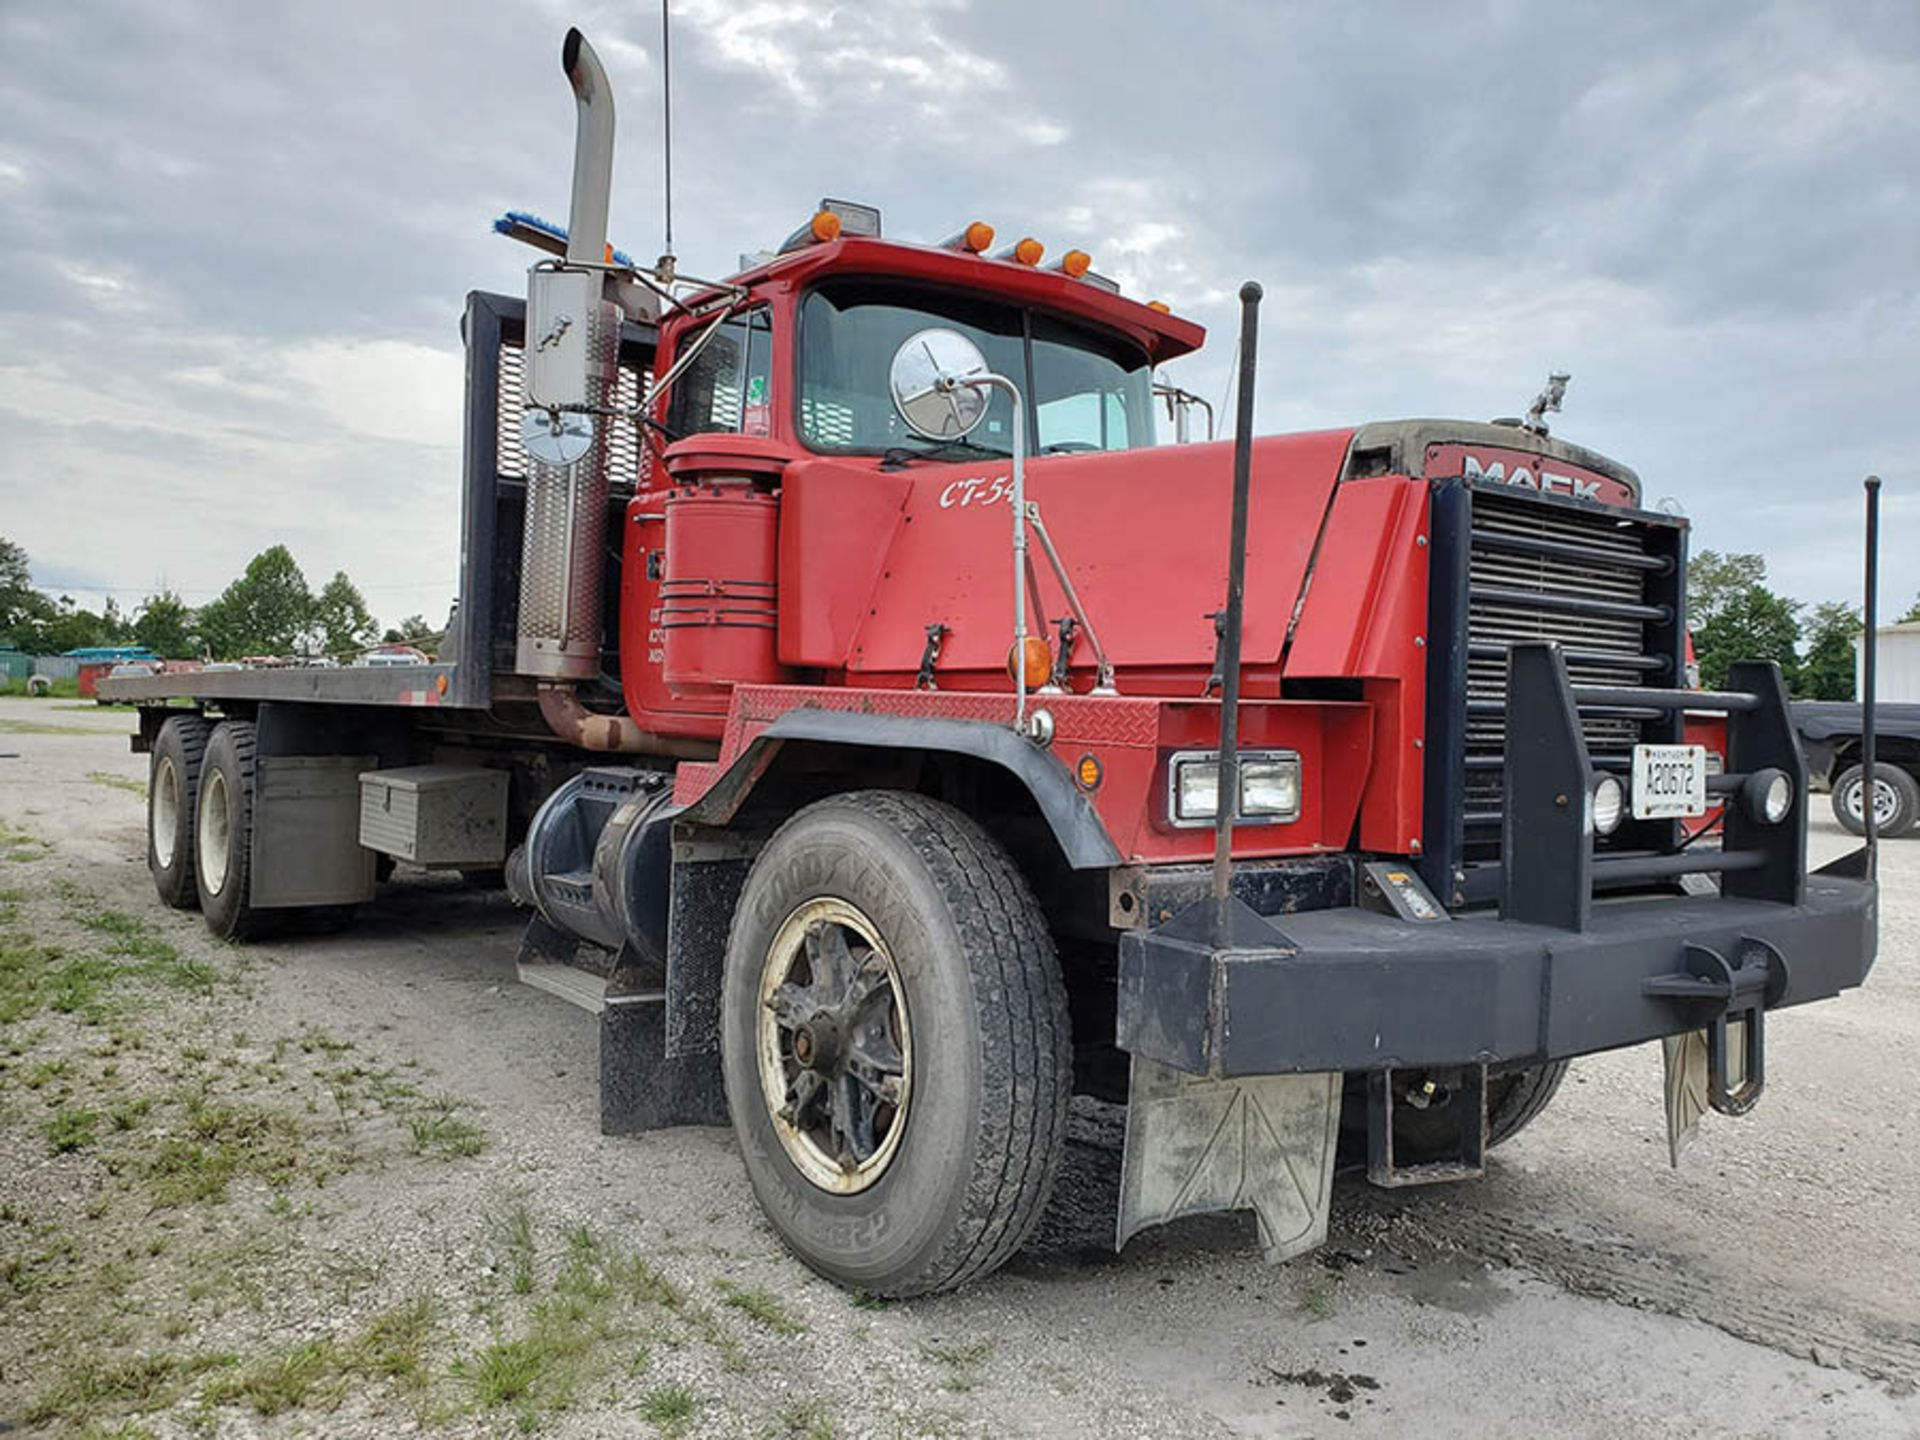 Lot 27 - 1997 MACK RD888 SX ROLL BACK TRUCK, T/A 2 RUFNEK WINCHES, MAXITORQUE ES TRANS, 410,661 MILES, 25'